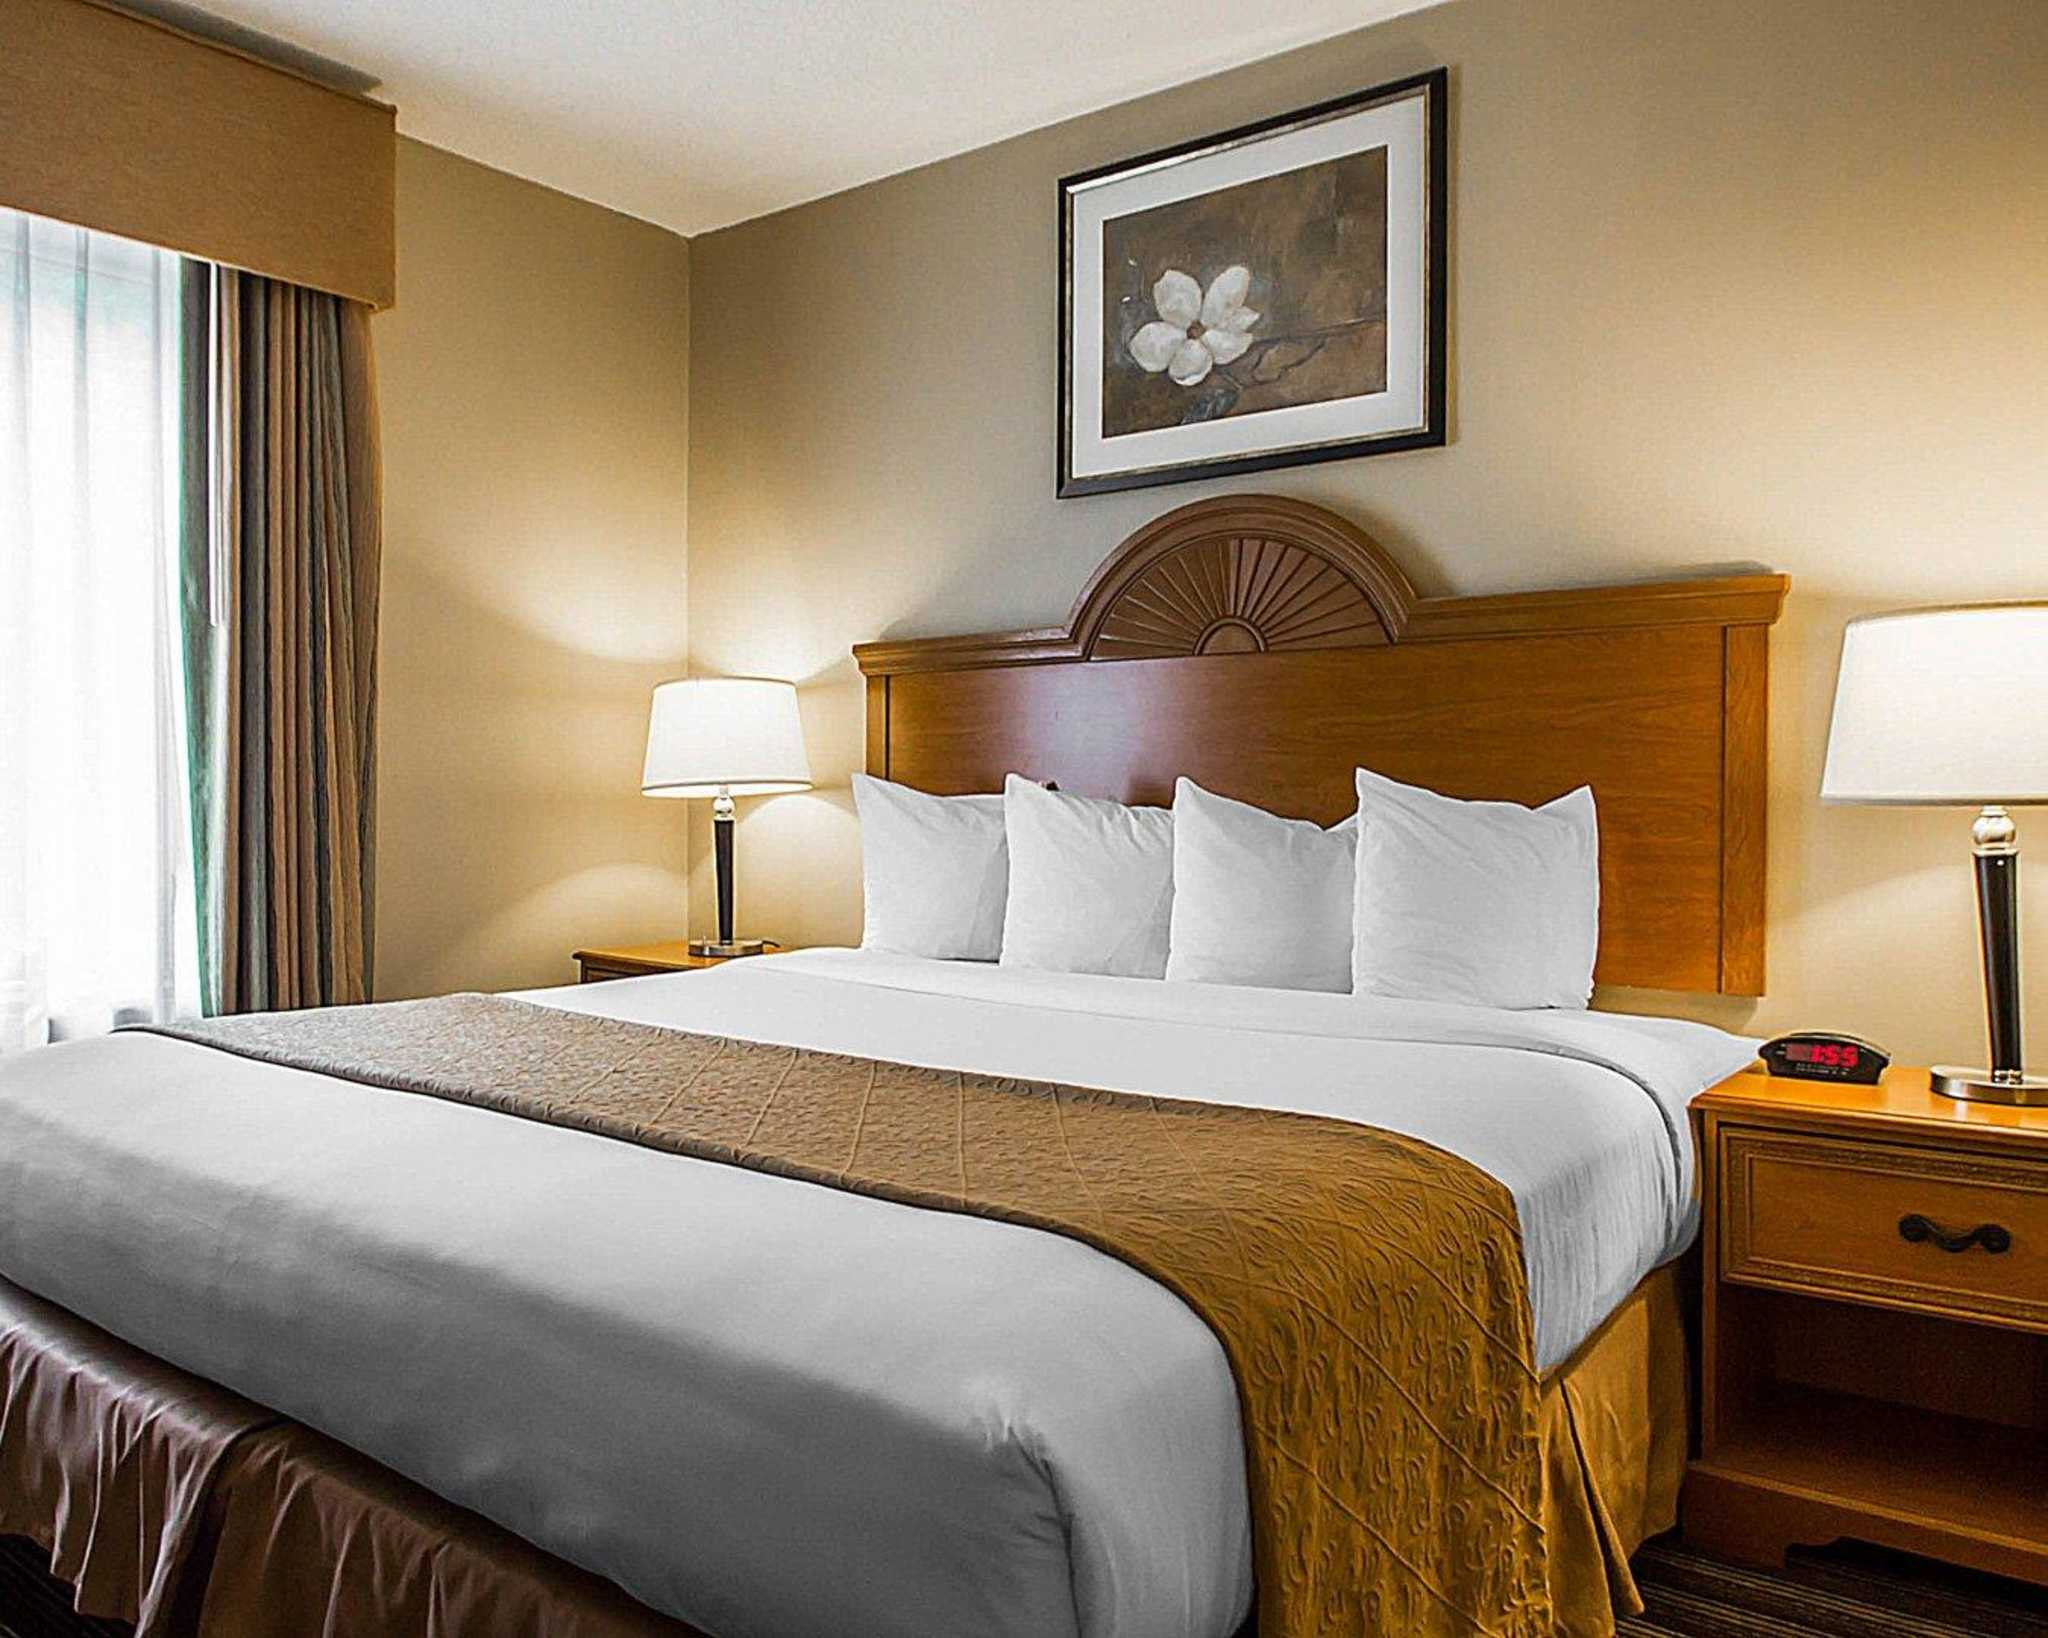 Hotels With Bridal Suites Near Me